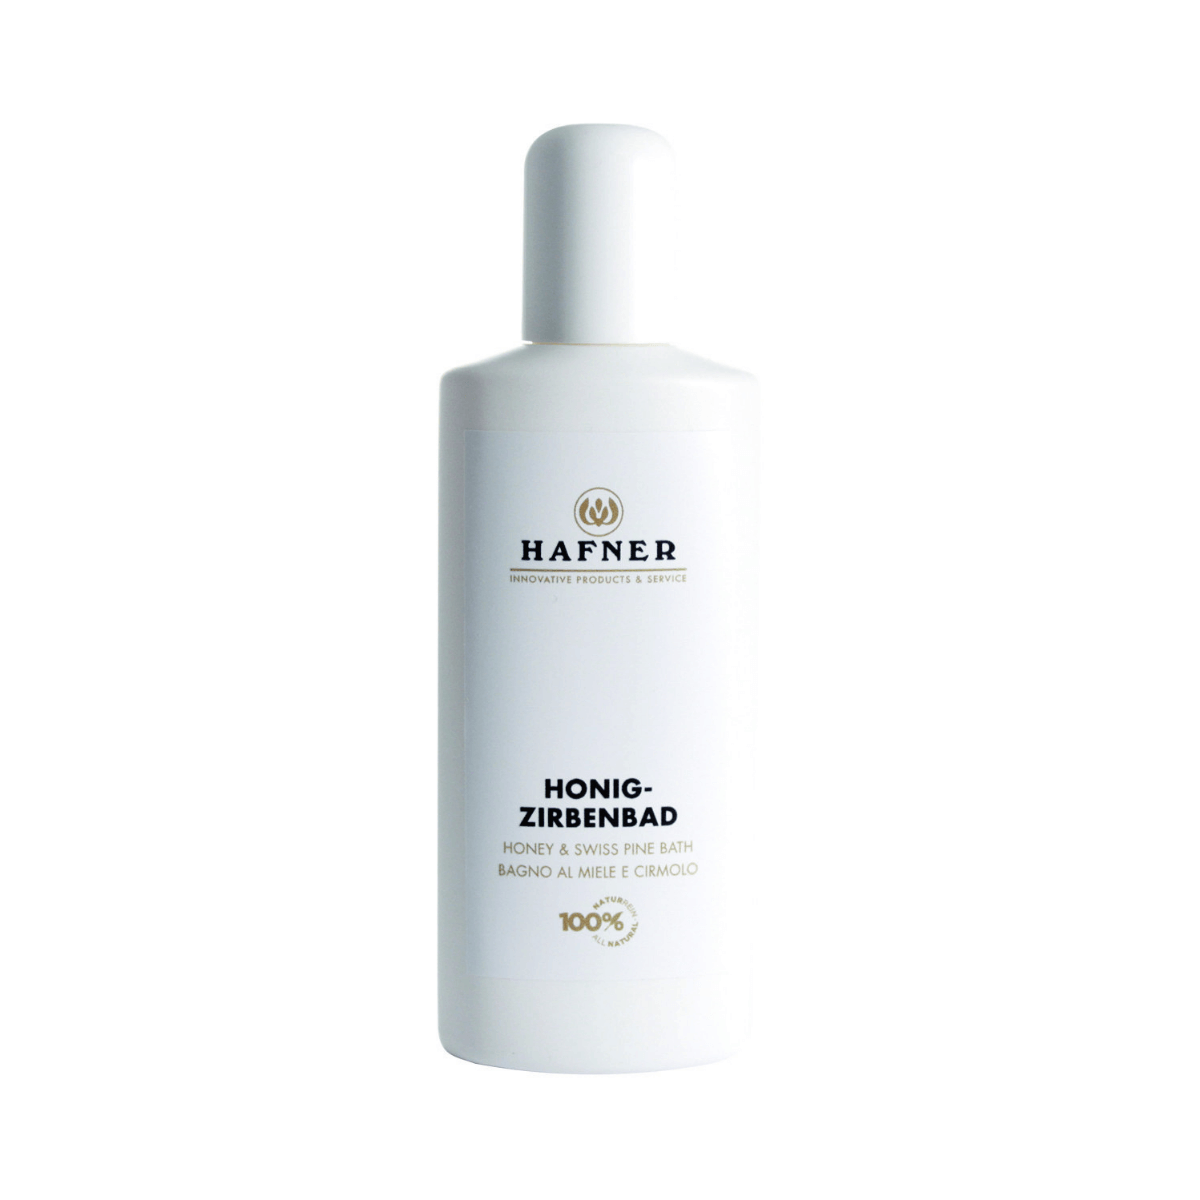 Hafner Honey Pine Bath (1000ml)